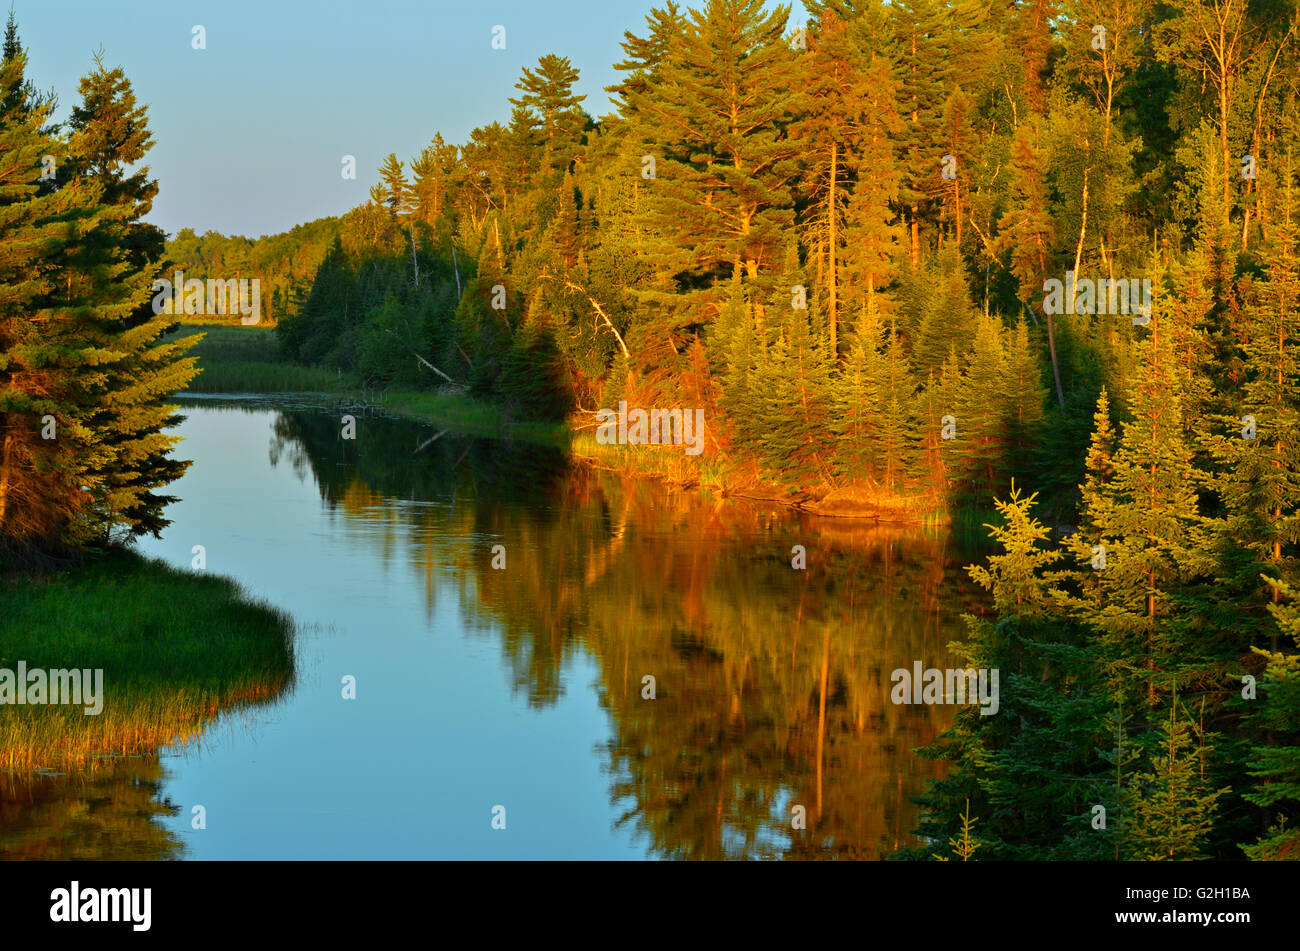 Sun setting on water at Reed Narrows, connected to Lake of the Woods, Reed Narrows, Ontario Canada - Stock Image